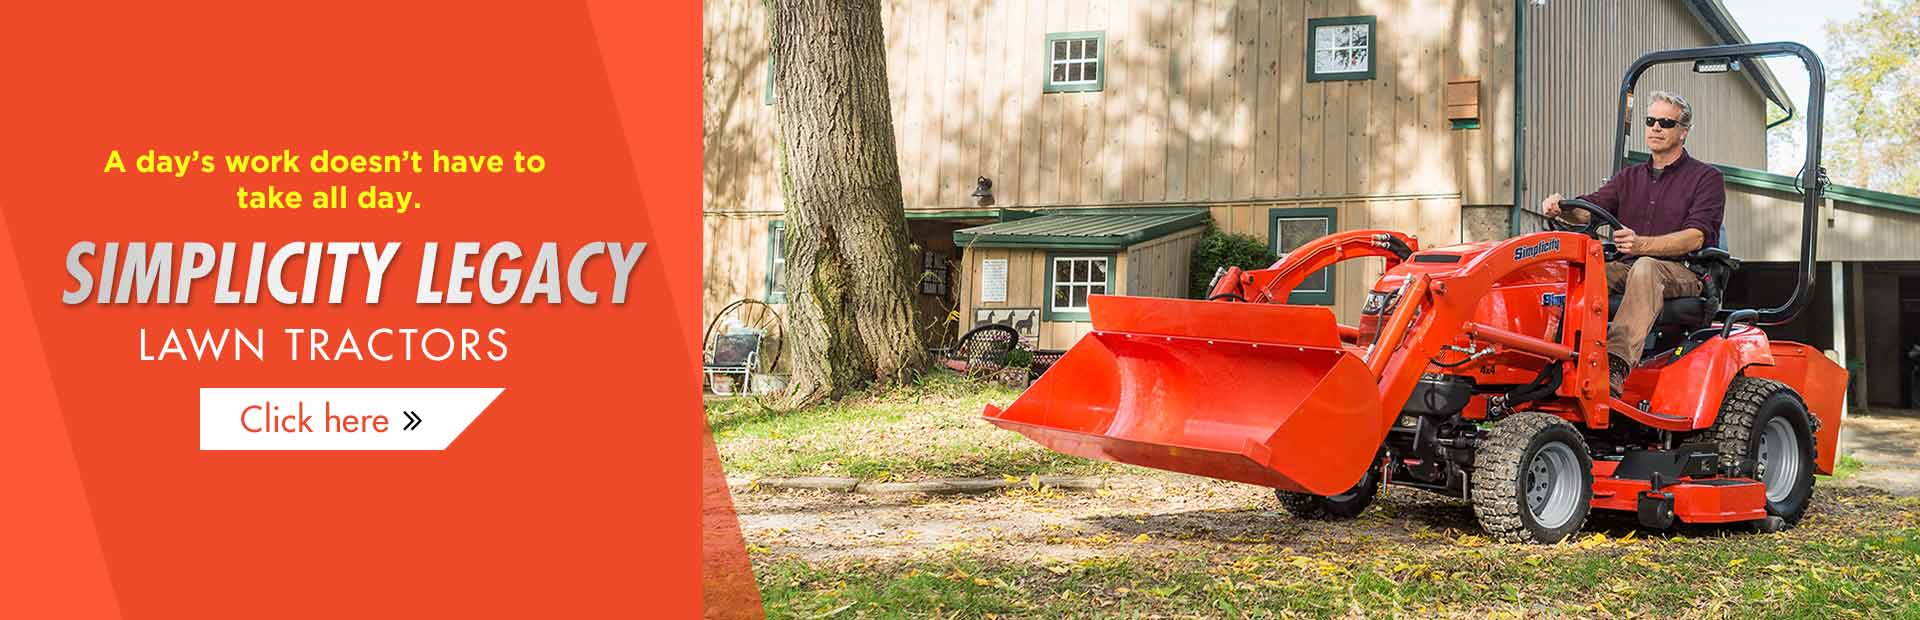 Get the job done with Simplicity Legacy lawn tractors! A day's work doesn't have to take all day. Cl